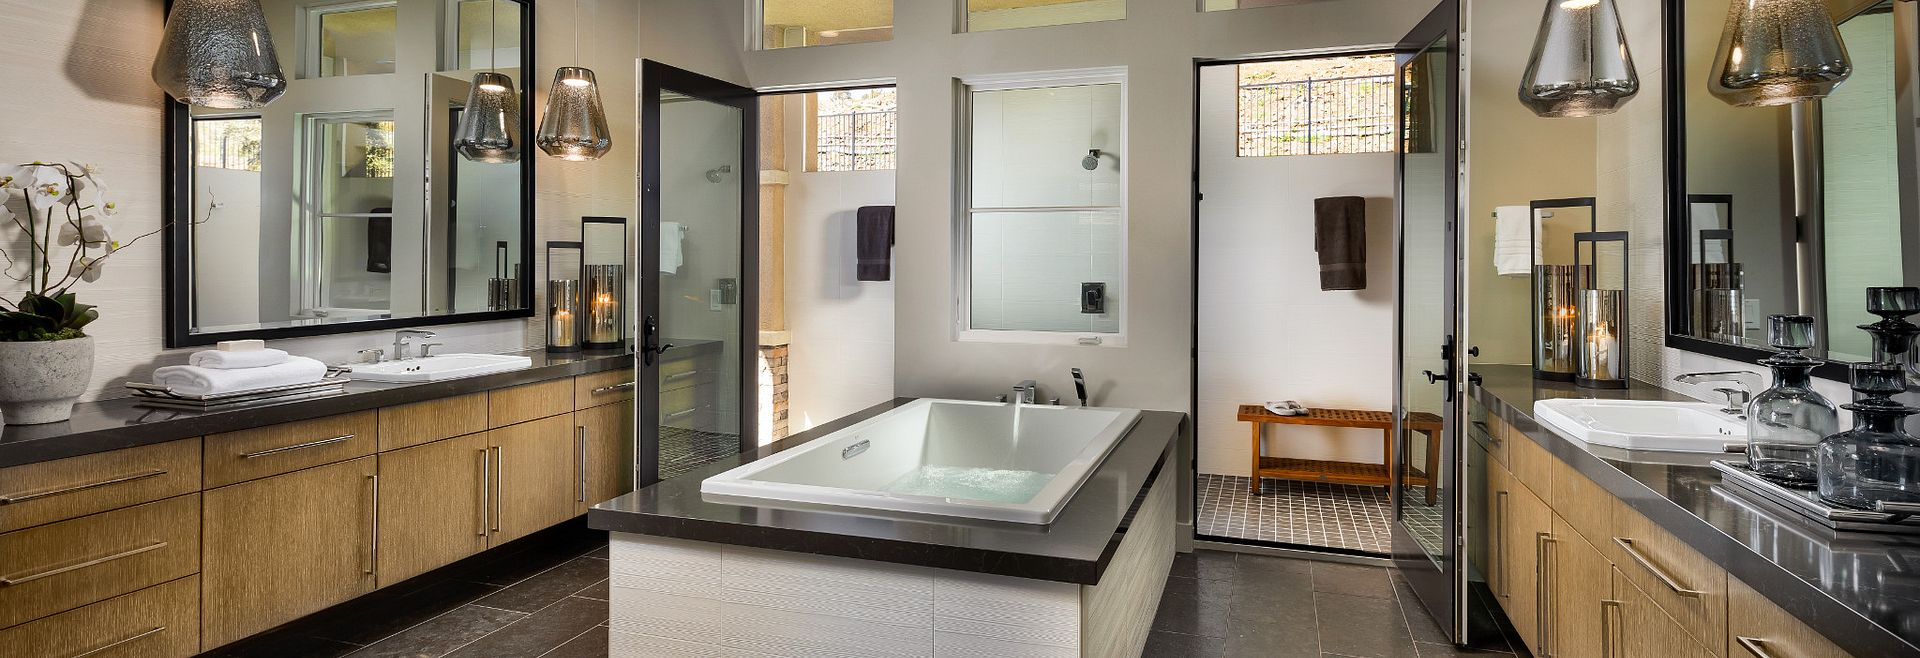 Plan 5 Master Bathroom with soaking tub, pendant lights, and double vanities